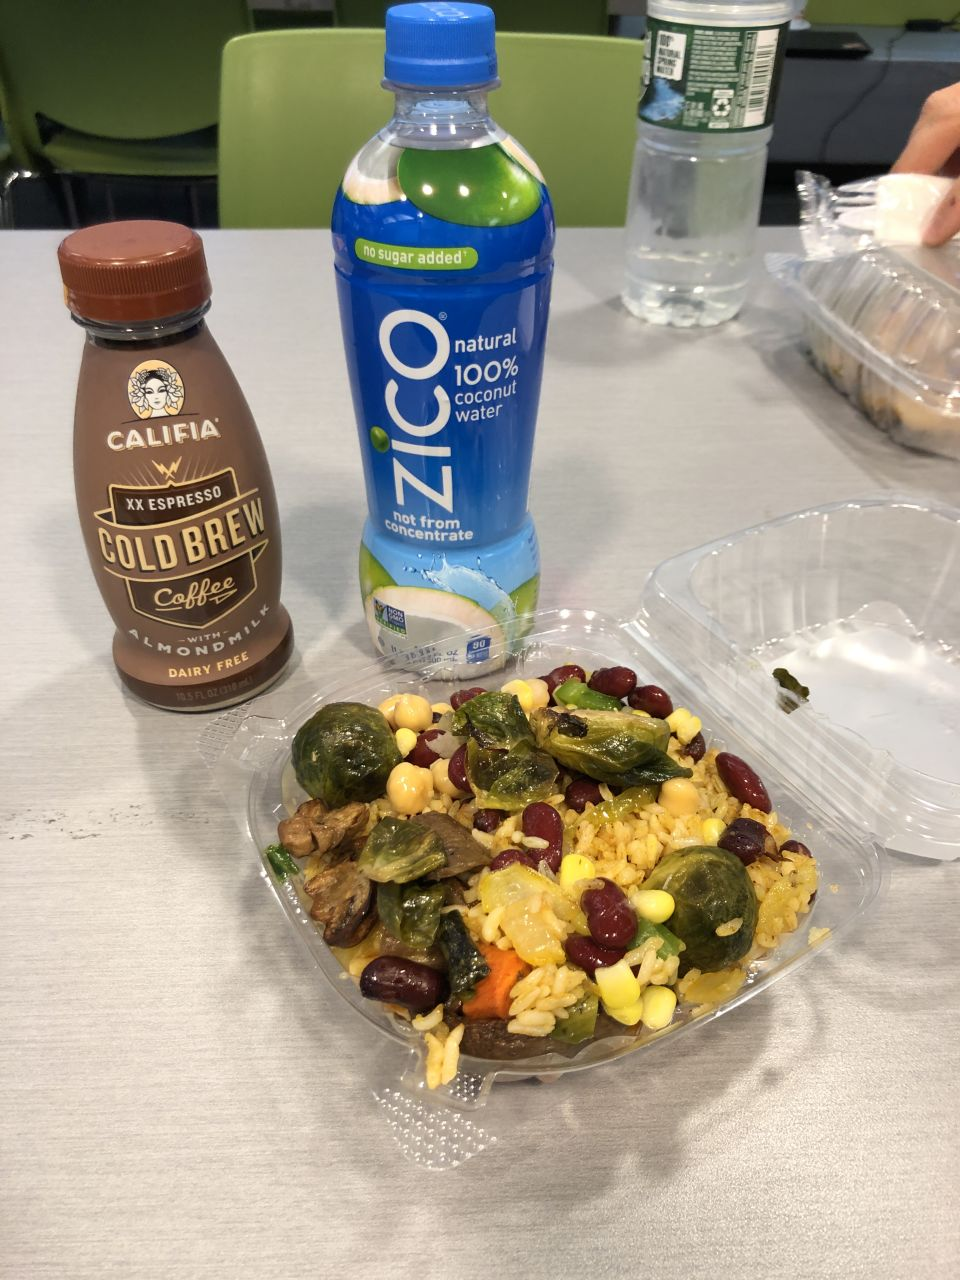 a bottle of cold brew coffee, a bottle of coconut water, and a plastic clamshell full of rice, beans, and brussels sprouts